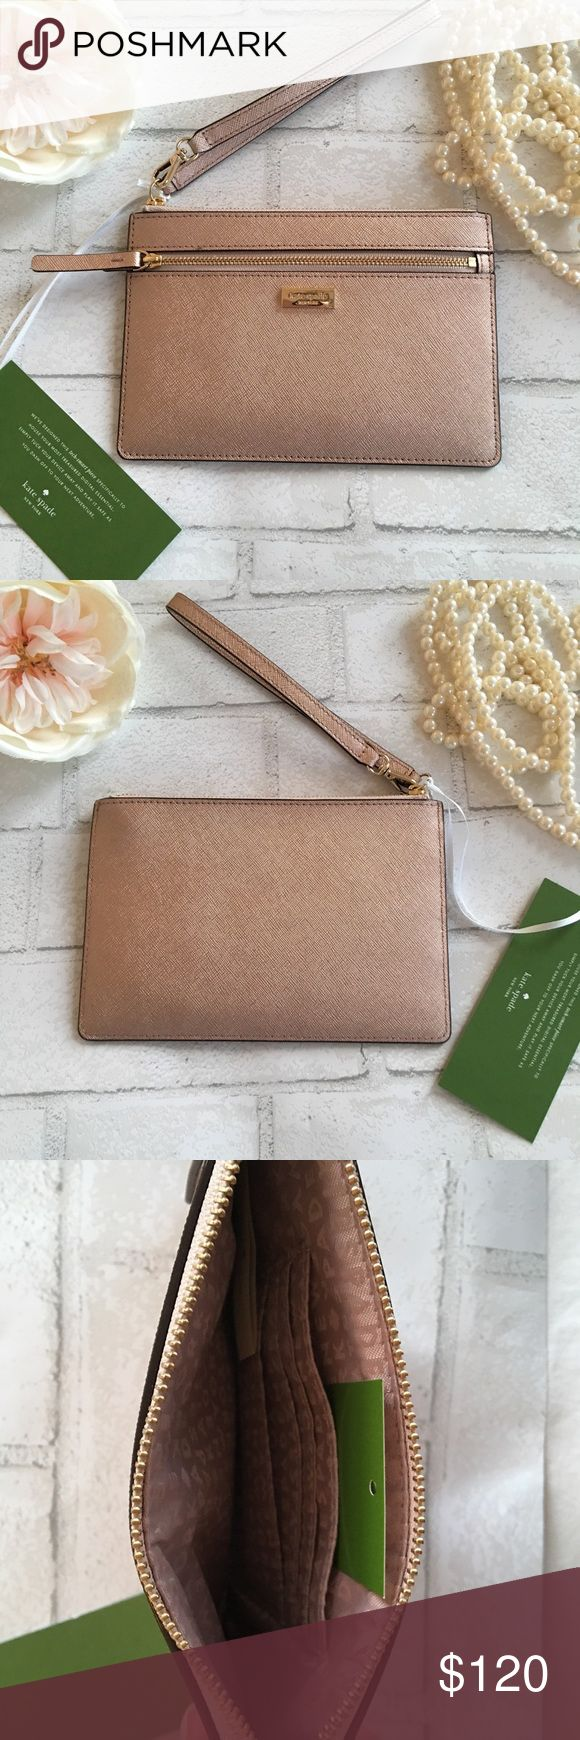 """NEW!!!! Kate Spade Rose Gold Wristlet NEW!!!! Kate Spade Rose Gold Wristlet. Wristlet is detachable and has one big compartment on the inside with four card slots. Outside has a zipper slot for your phone money and or keys. Made of Saffiano leather. Measurements 8"""" x 5"""". No trades. Price is firm unless bundled. Two items 10% off 3+ items 15% off kate spade Bags Clutches & Wristlets"""